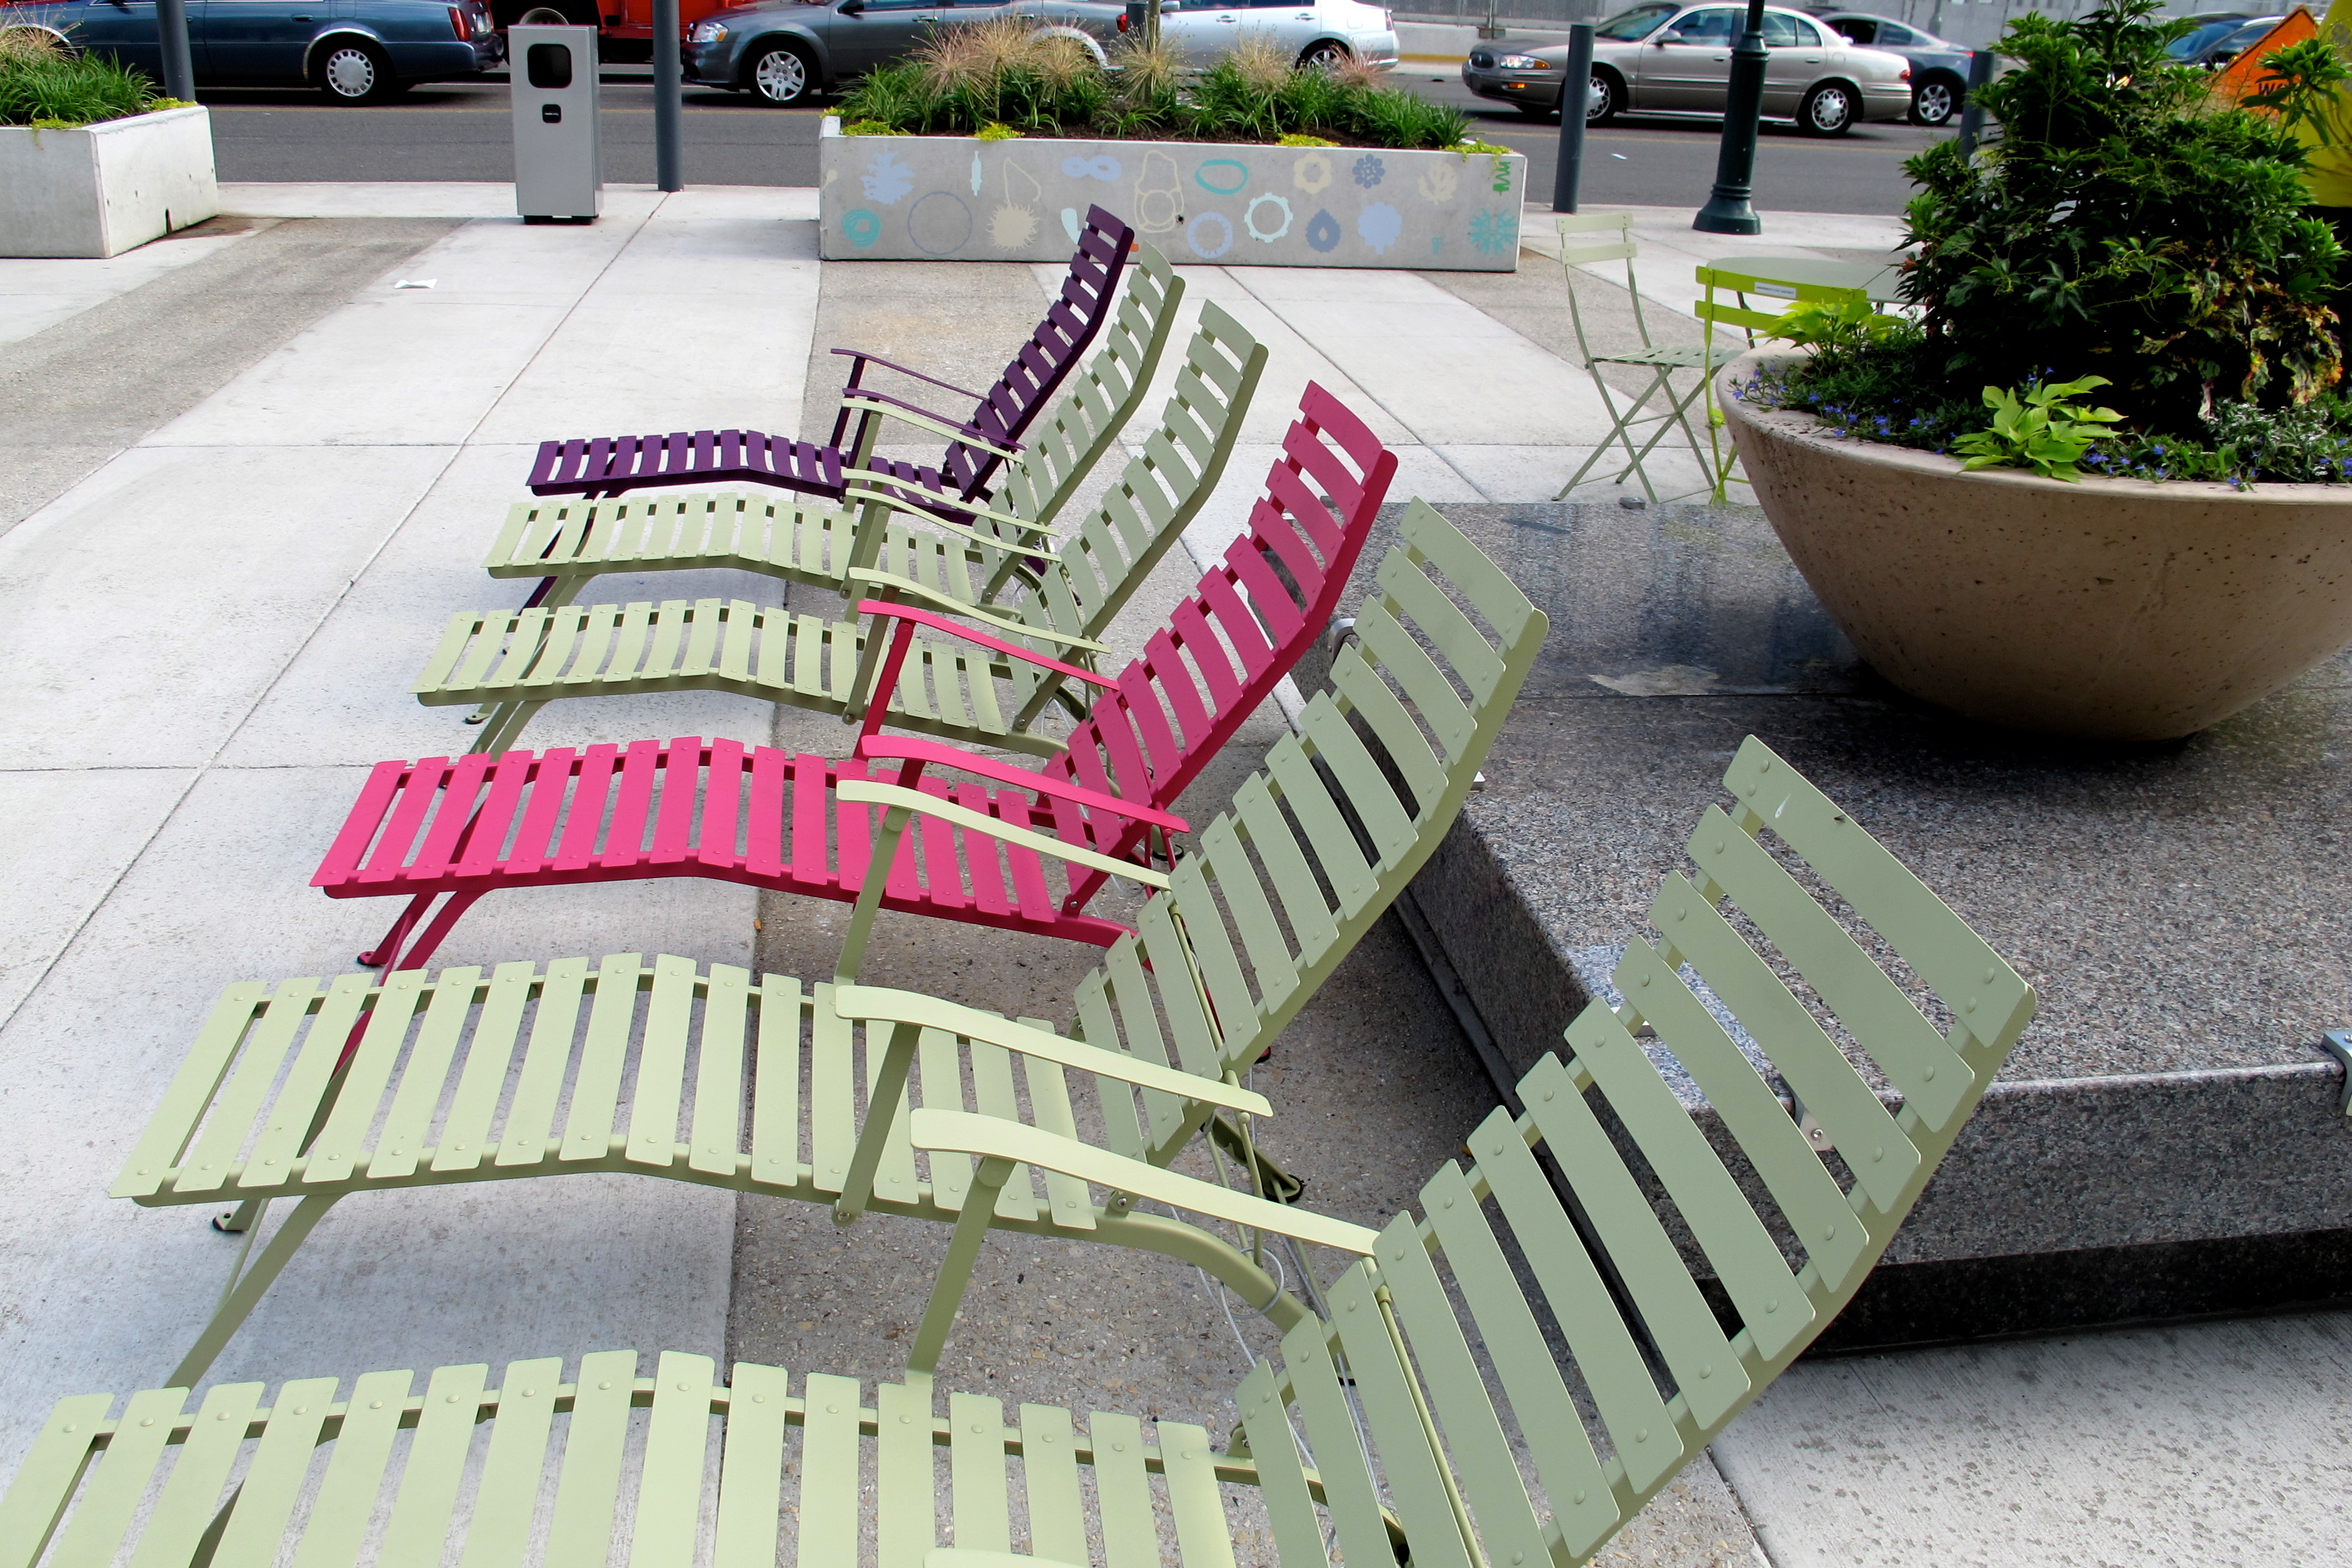 The Porch lounge chairs